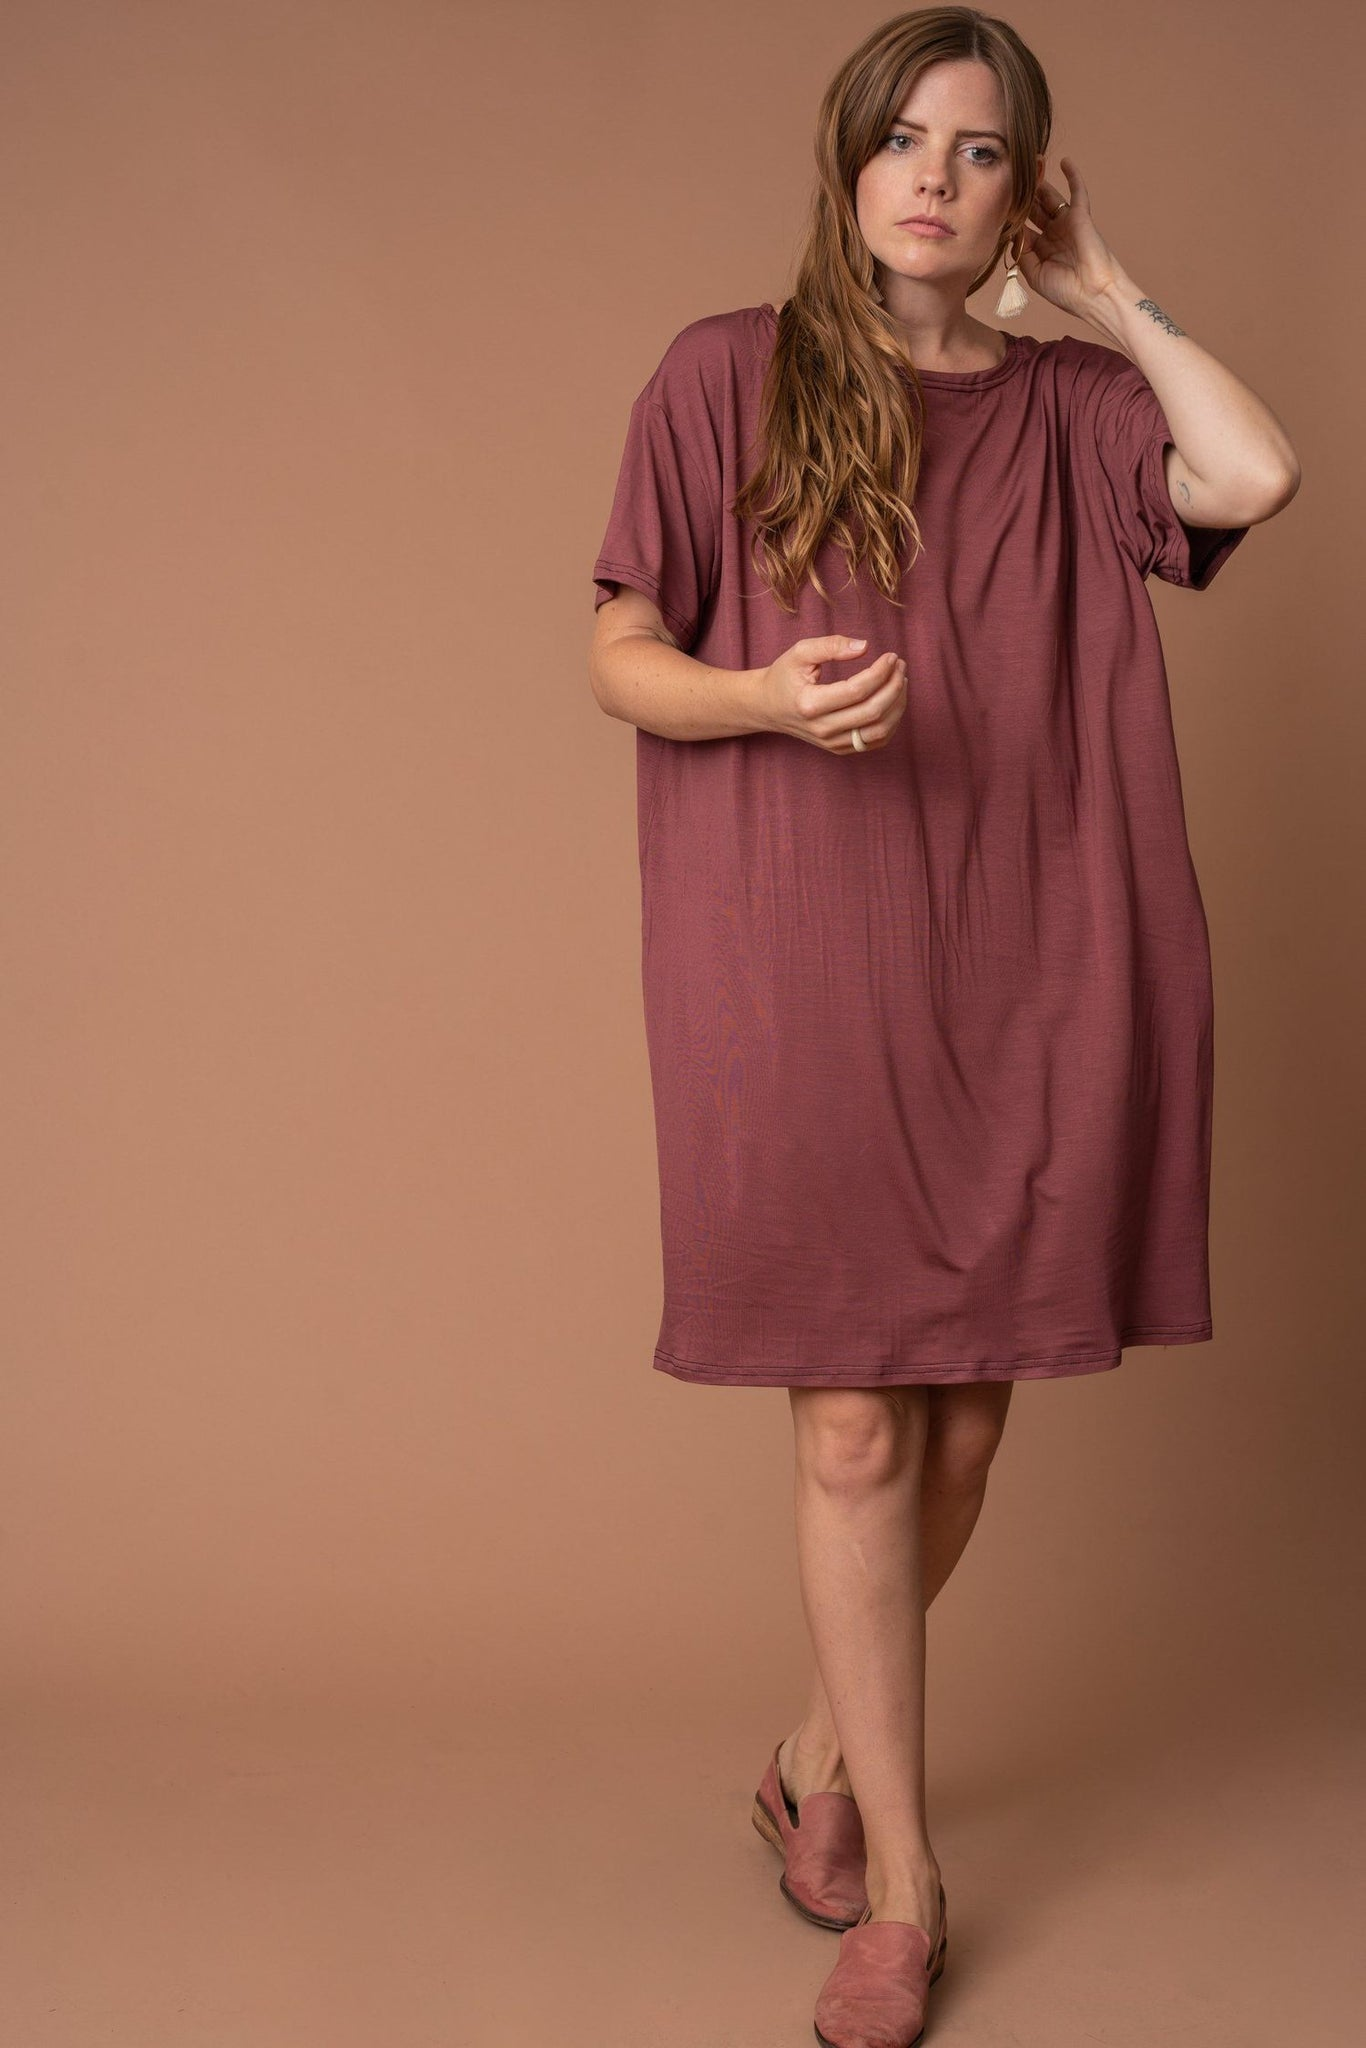 Altar sustainable t shirt dress